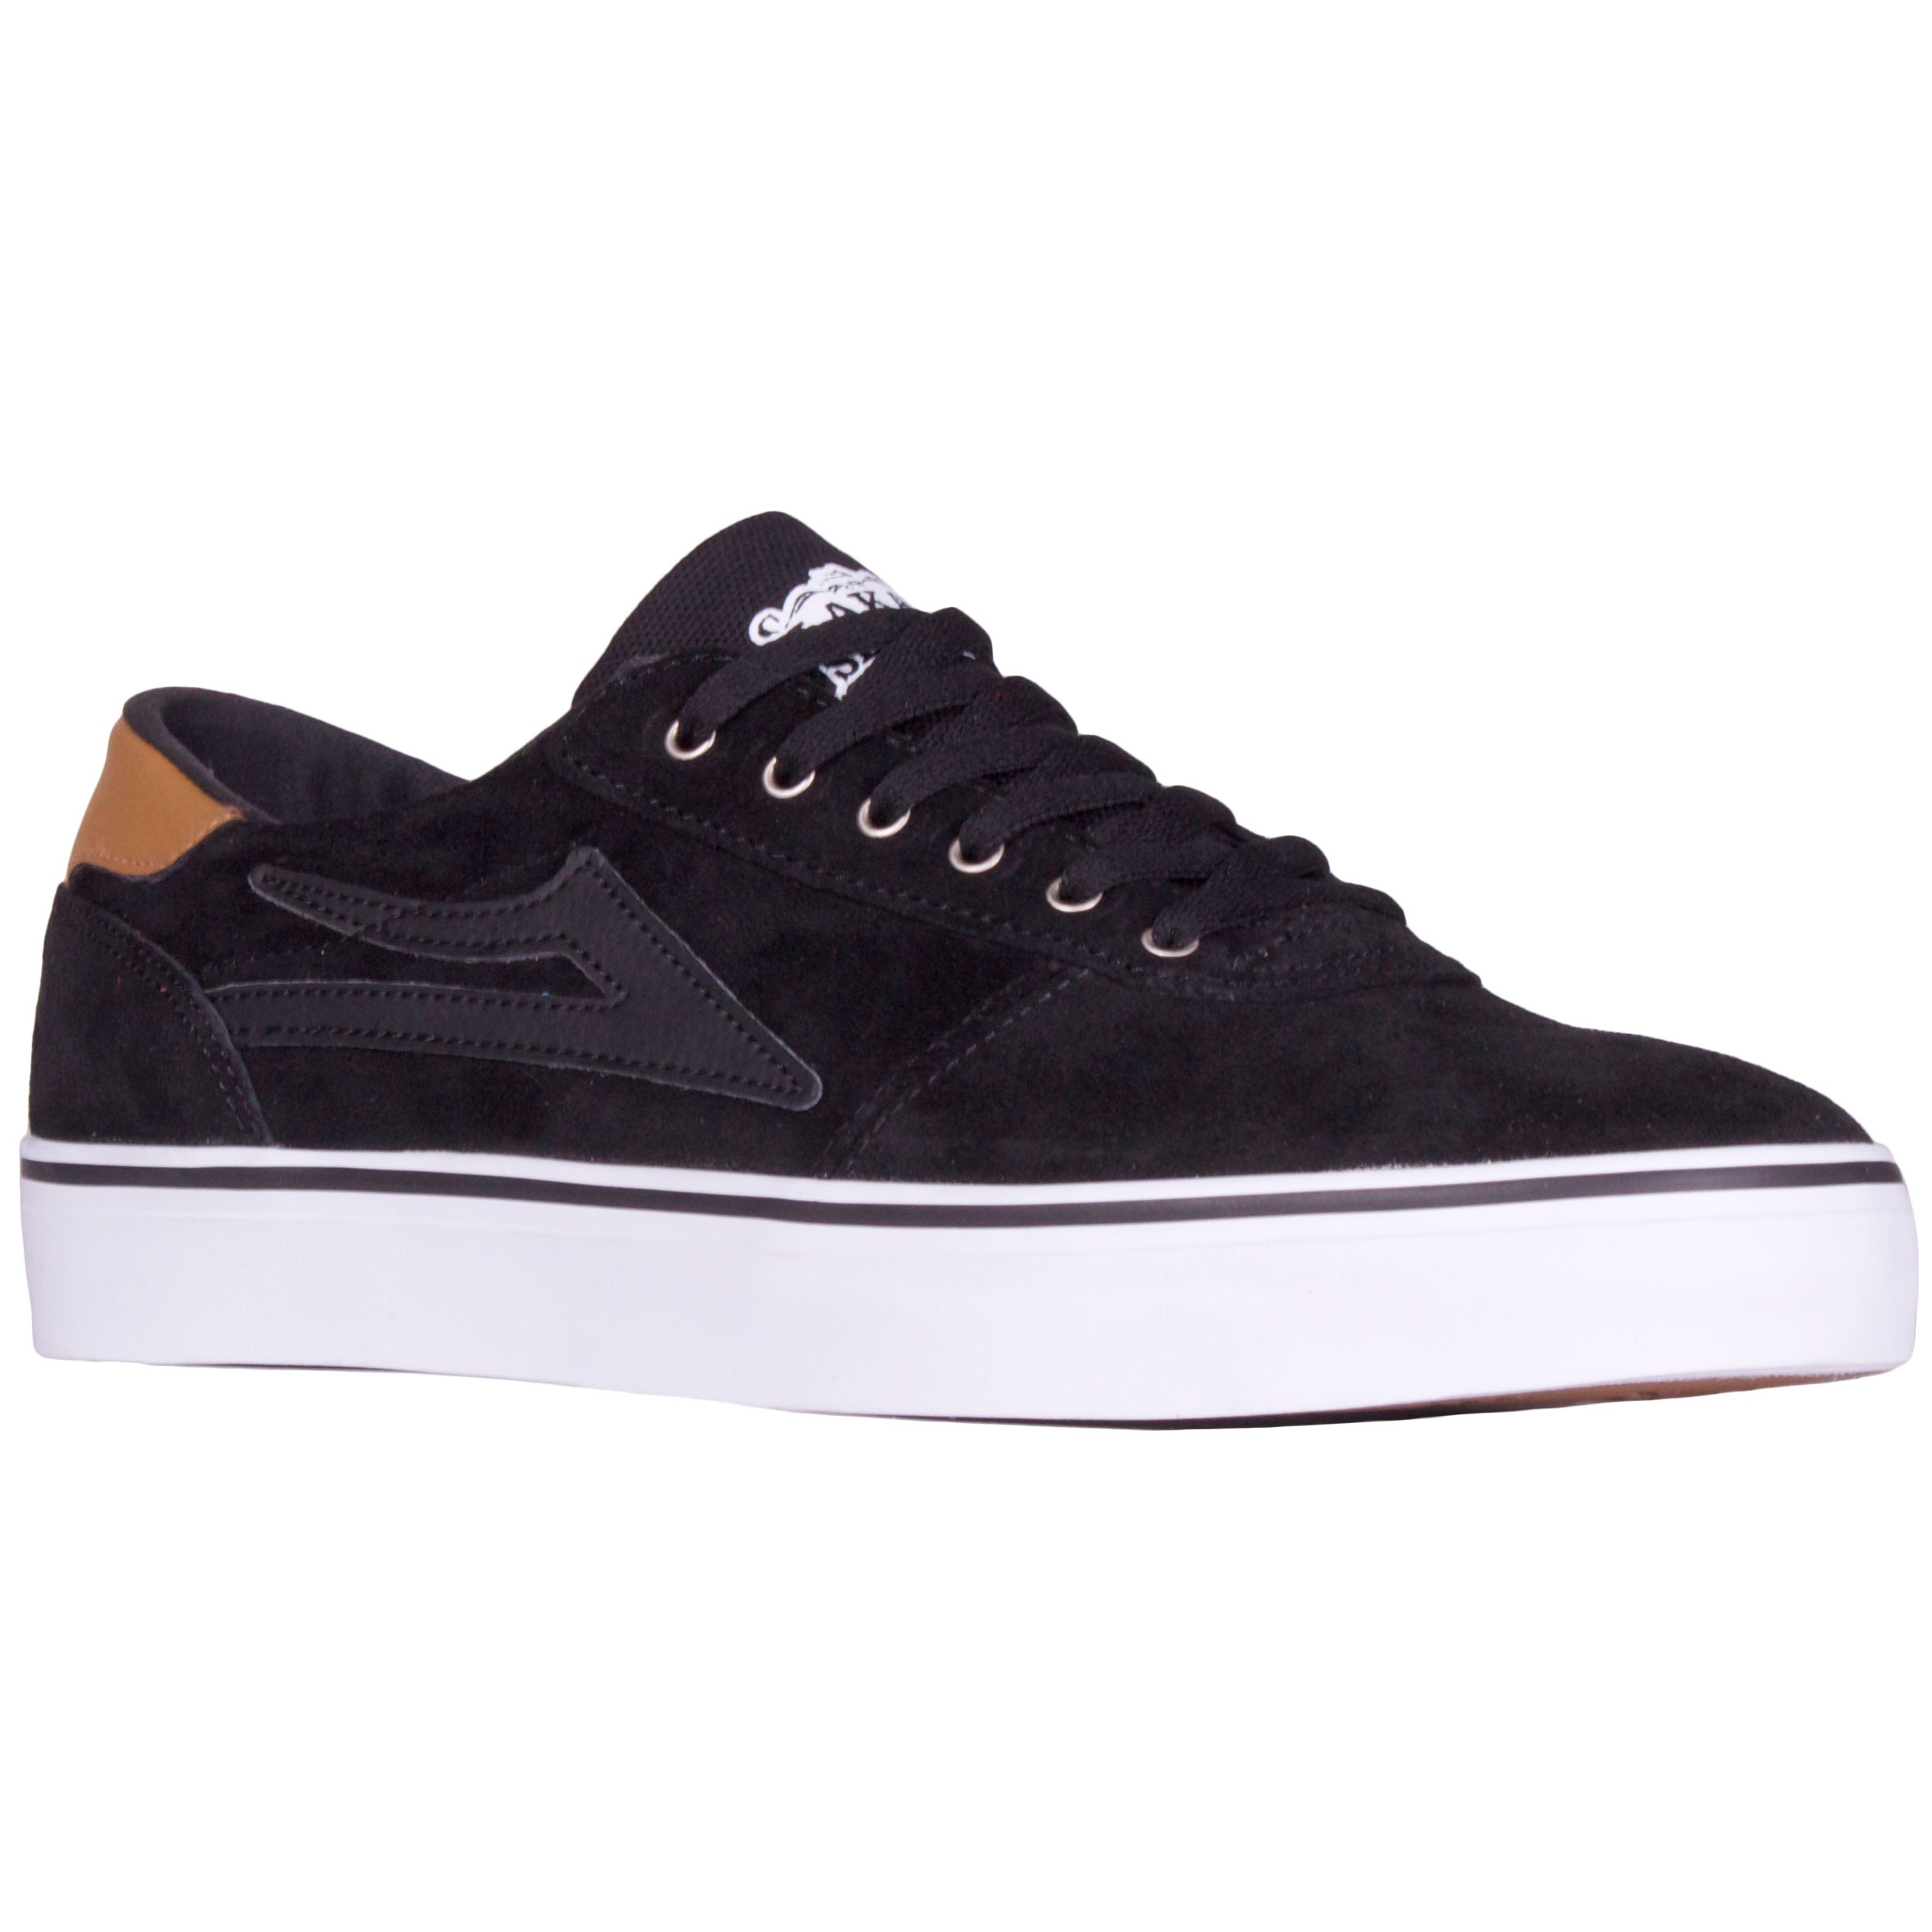 Lakai Manchester Lean Shoes - Black Suede - 8.0